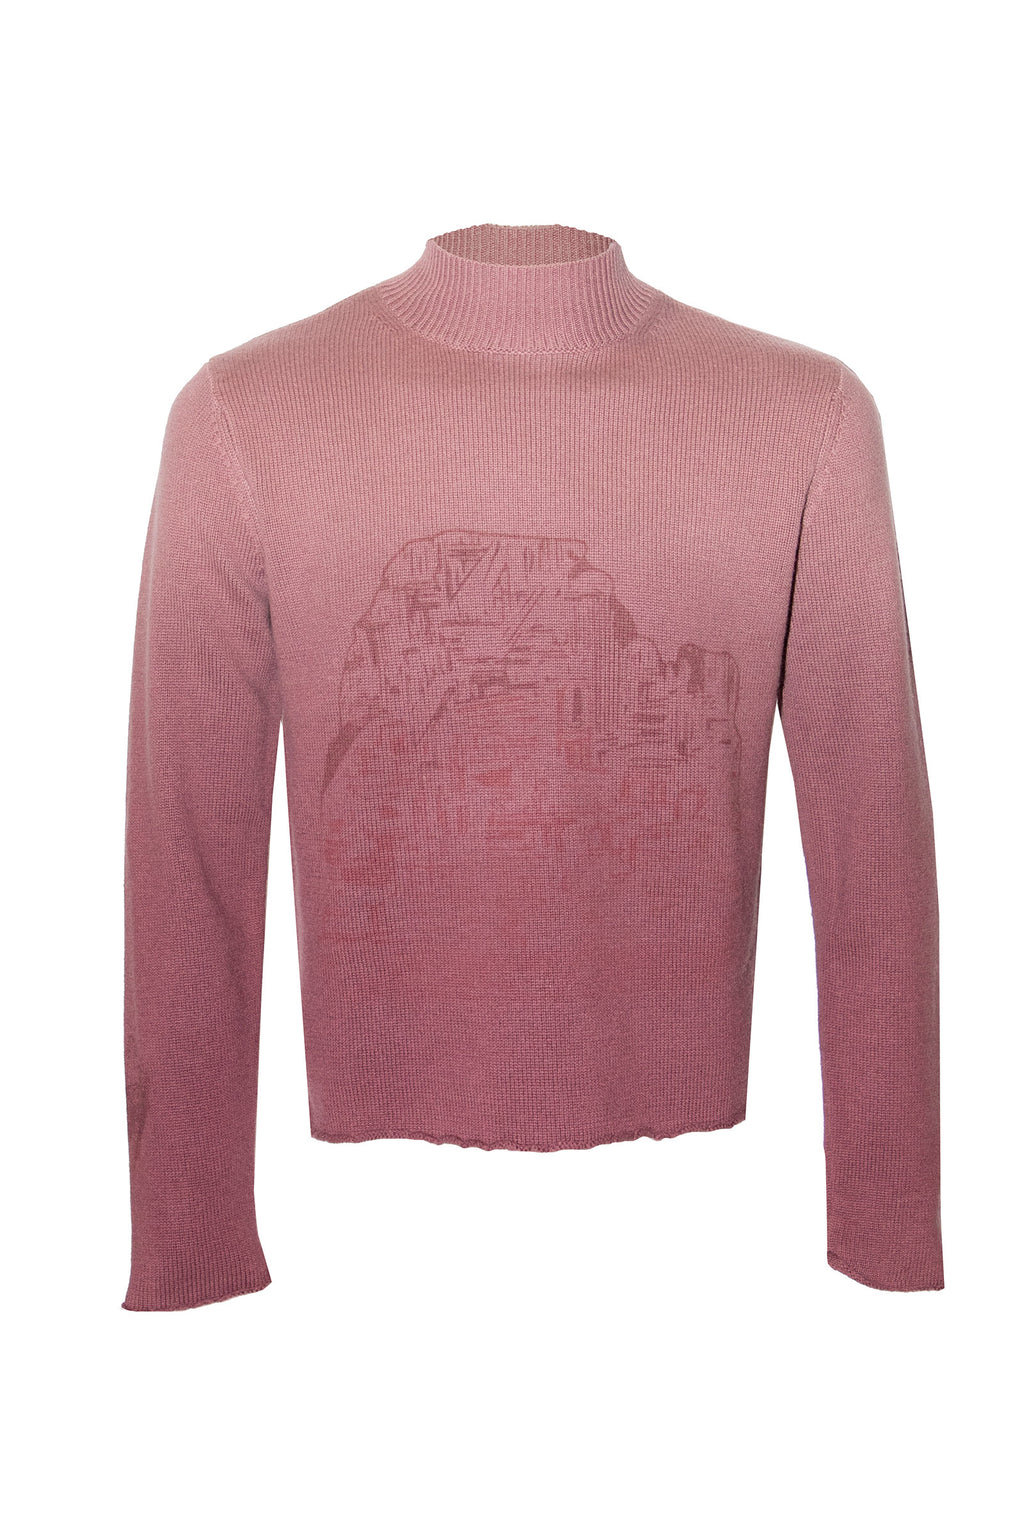 Adrian Unisex Ombre Pink Sweater